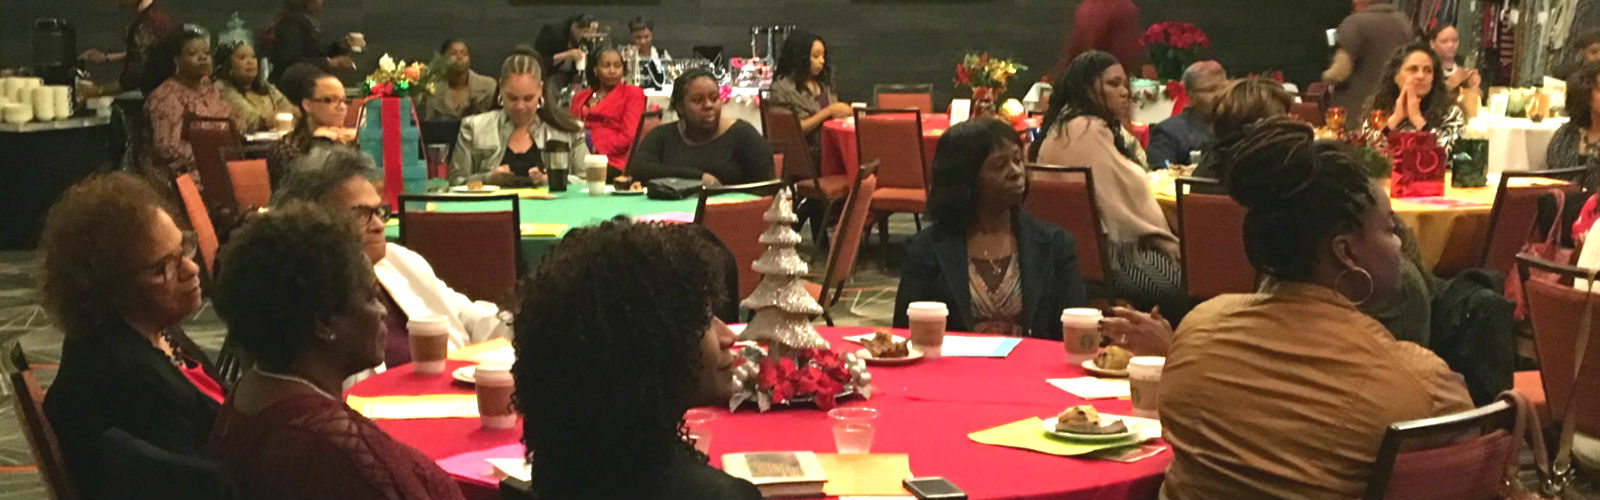 Annual Women's Holiday Tea